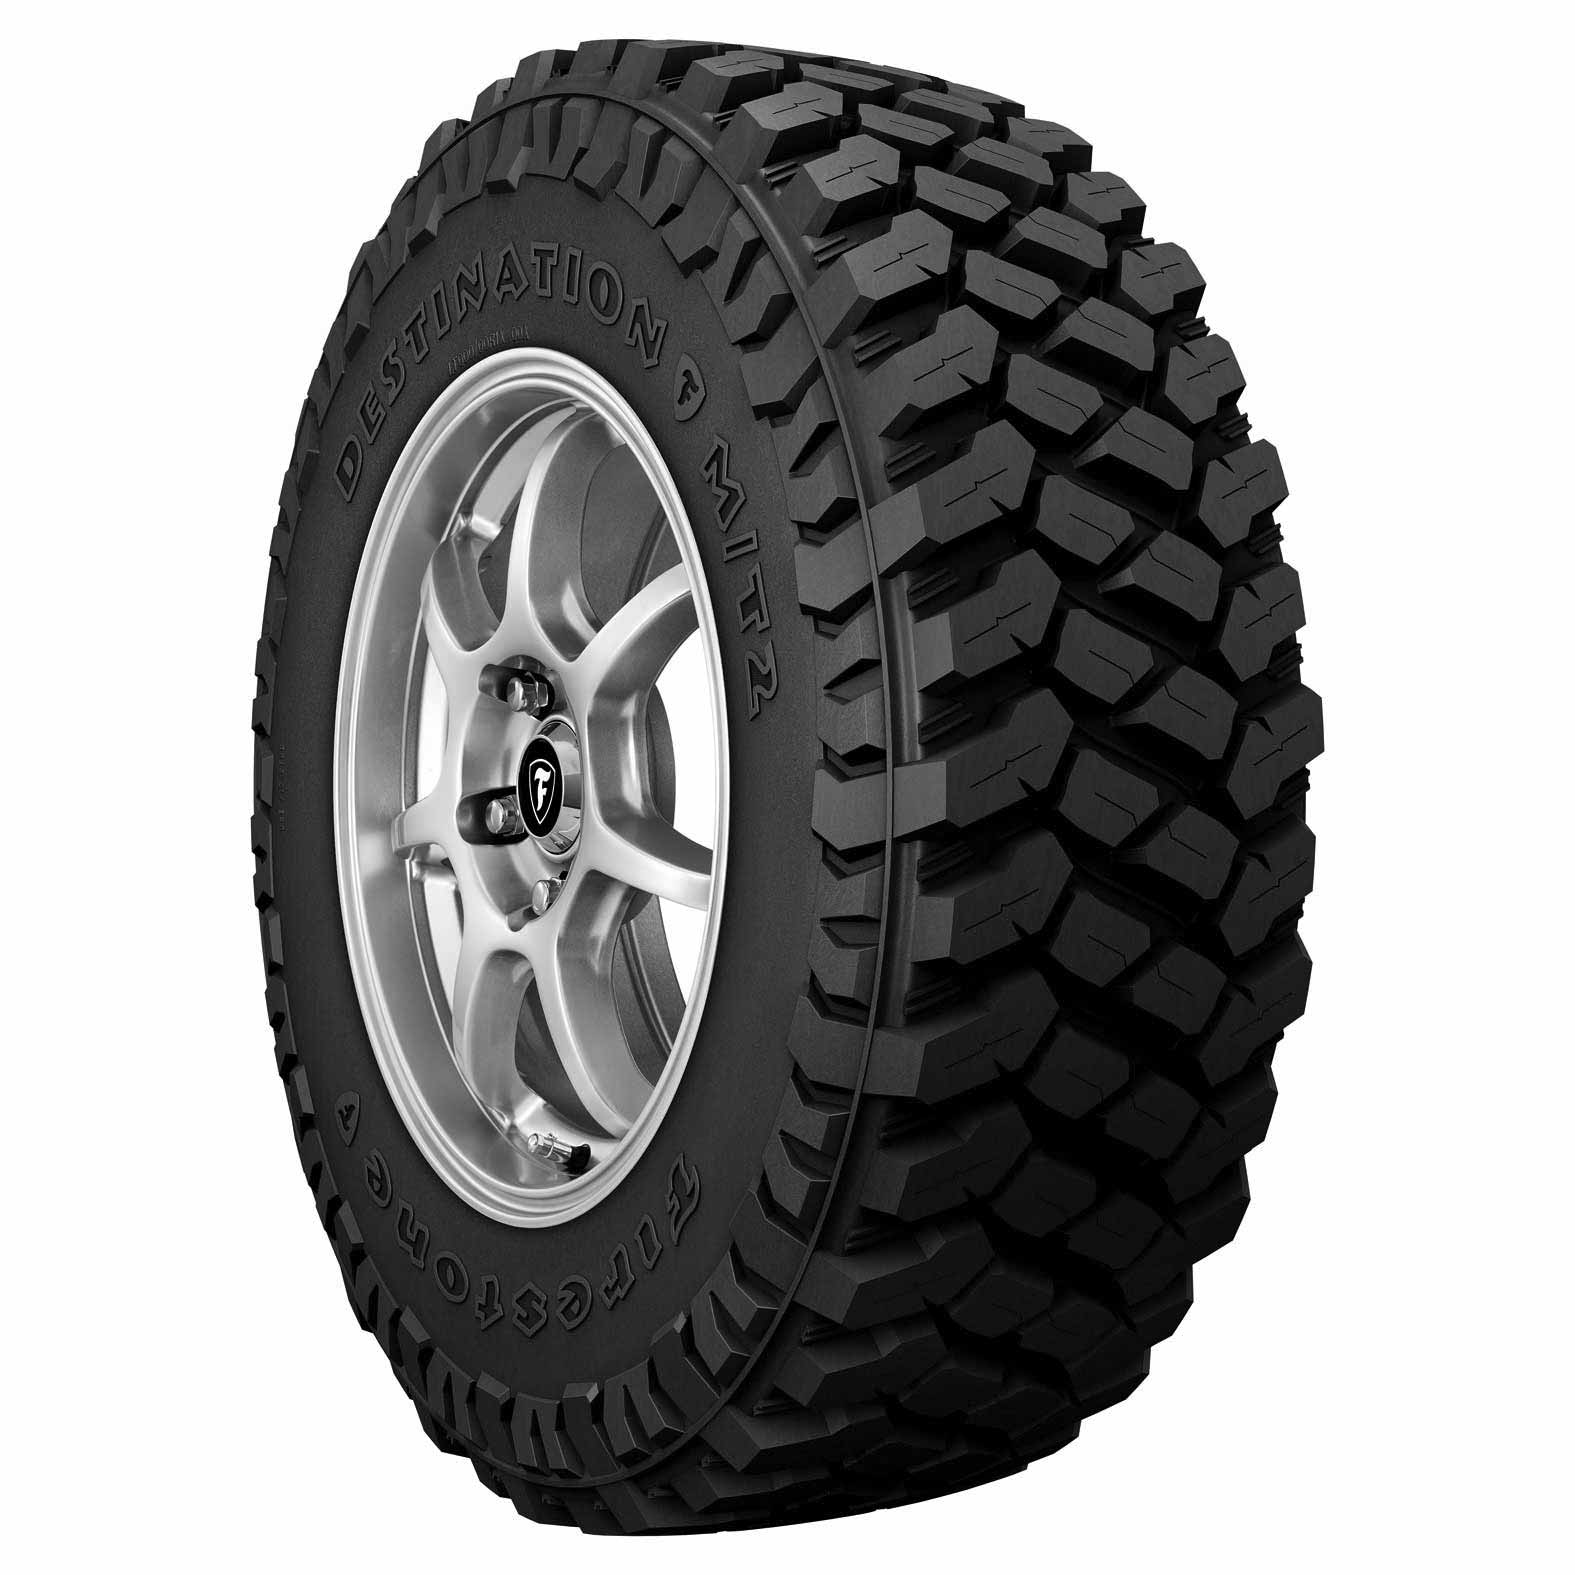 Firestone Destination M/T2 tire - angle